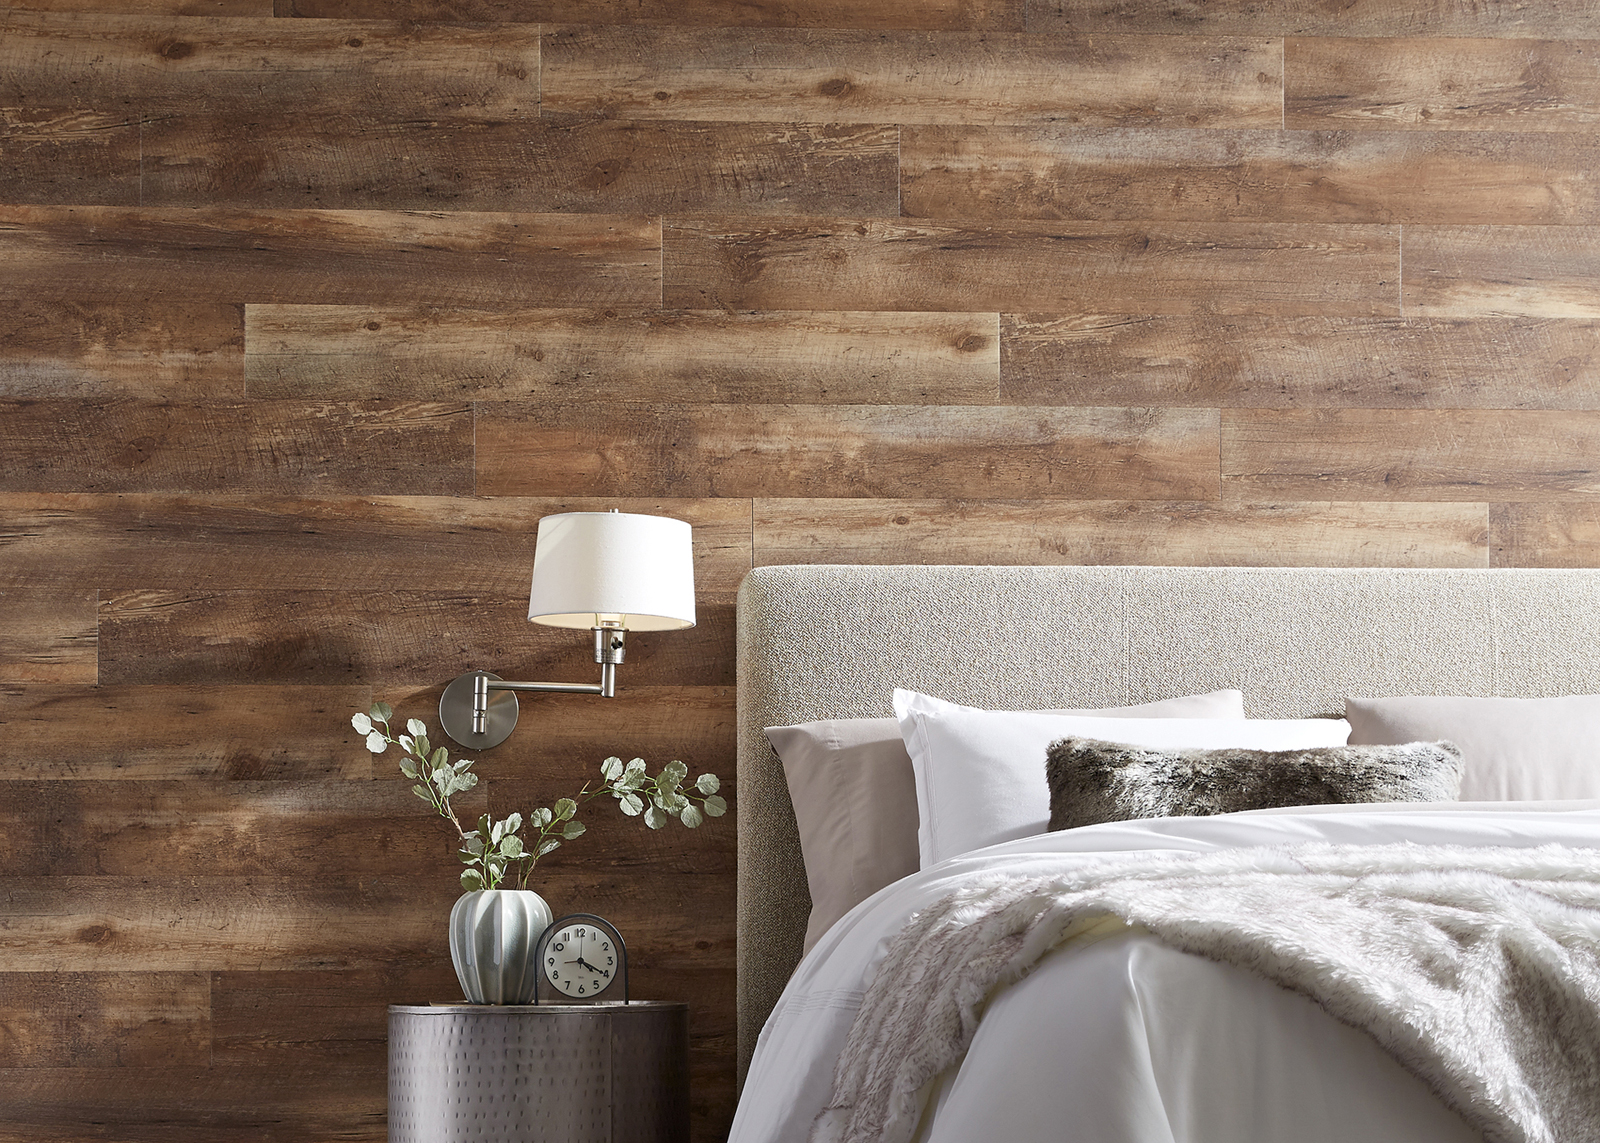 Wood and composite floor products can be an attractive and cheap wall covering option for accent walls in any room